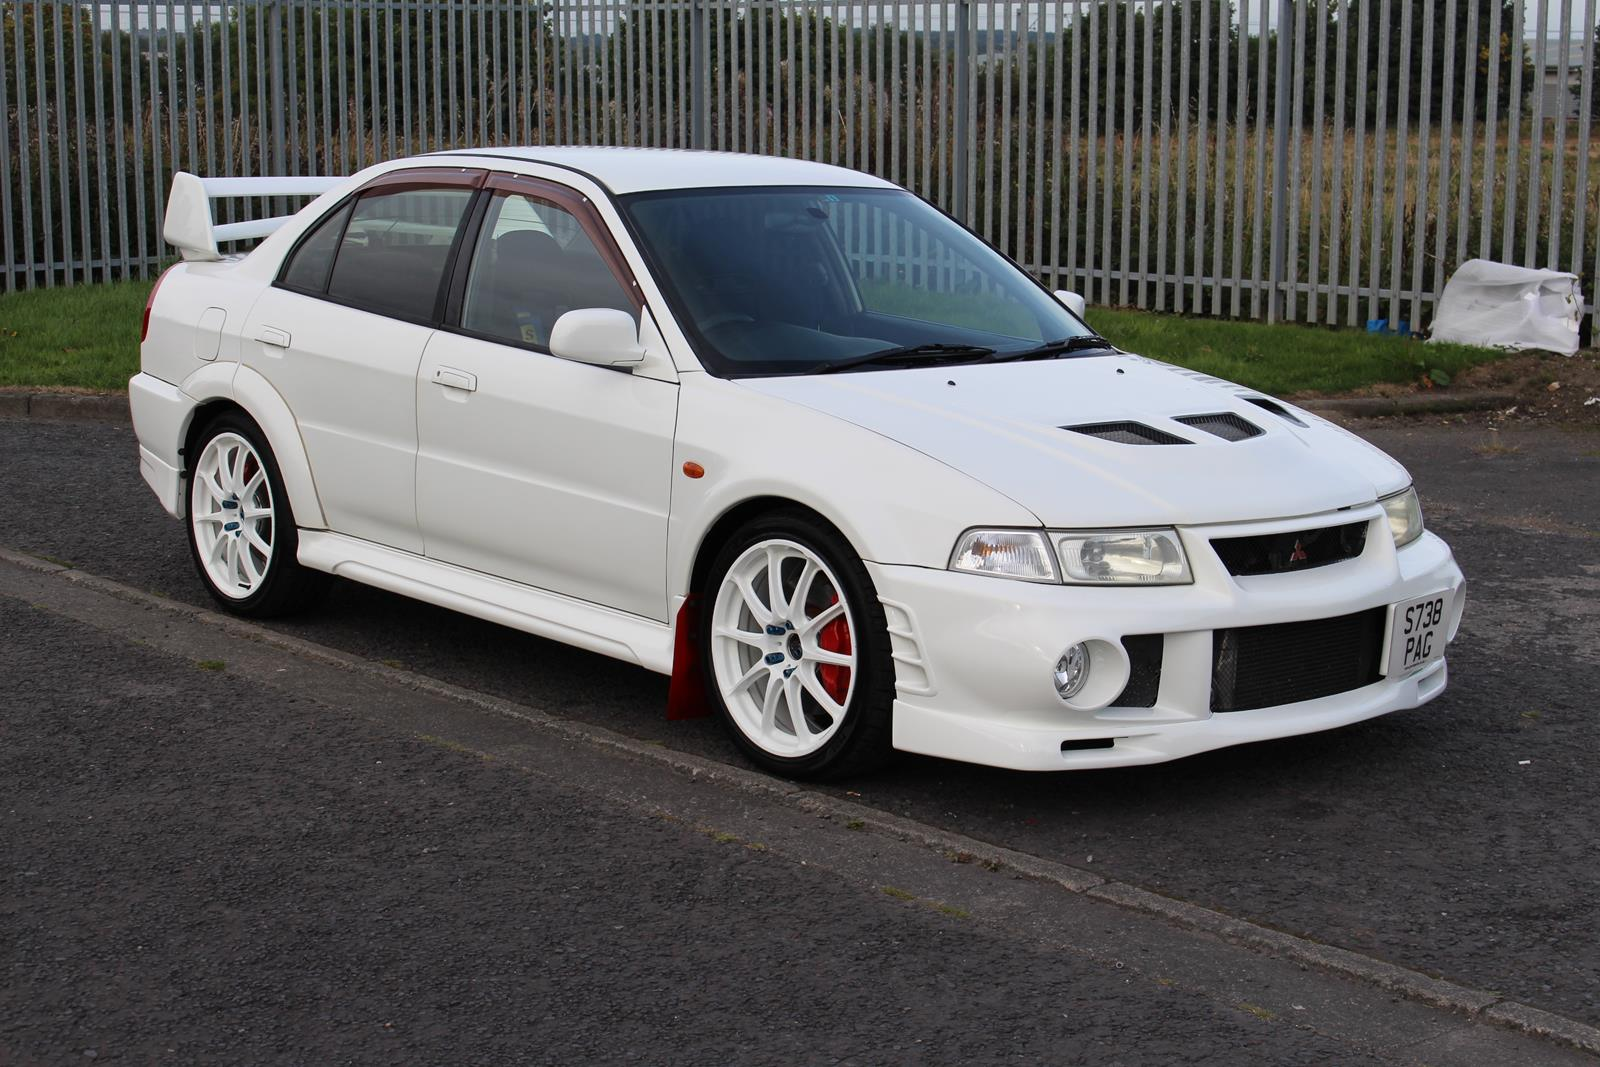 1999 Mitsubishi Lancer Evo 6 Manual 5 Speed